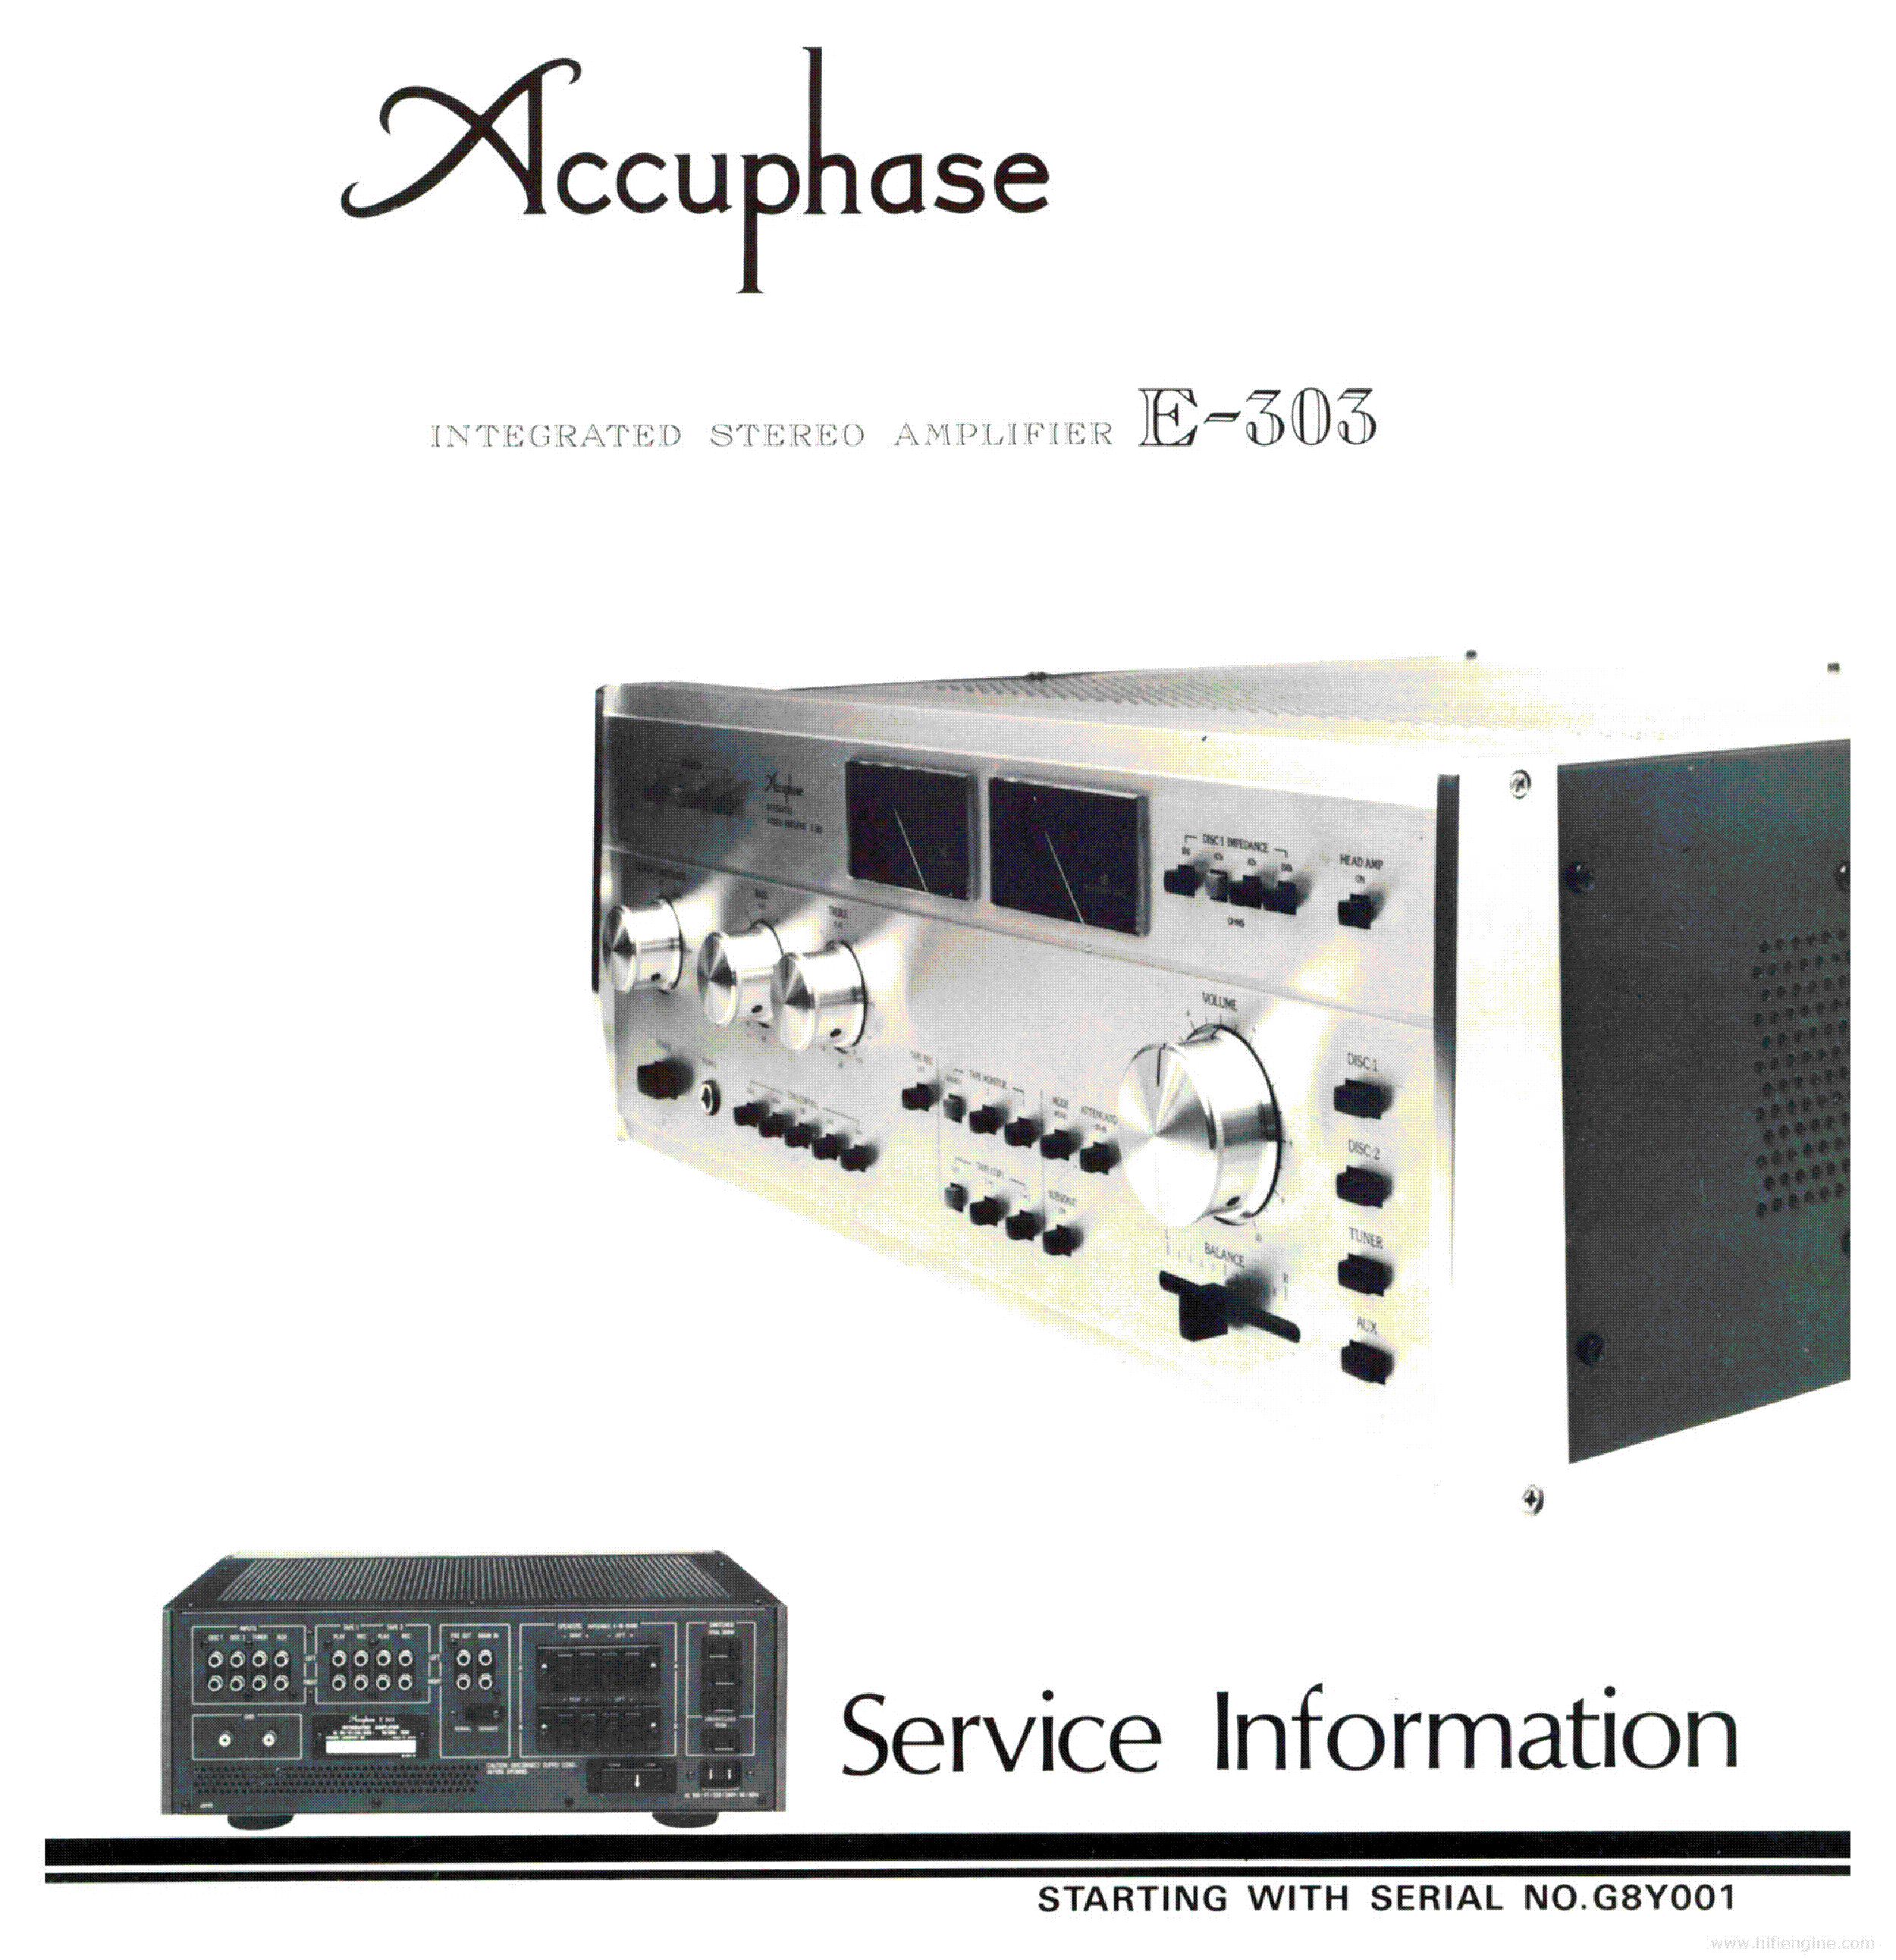 ACCUPHASE P700 CIRCUIT A3 Service Manual download, schematics